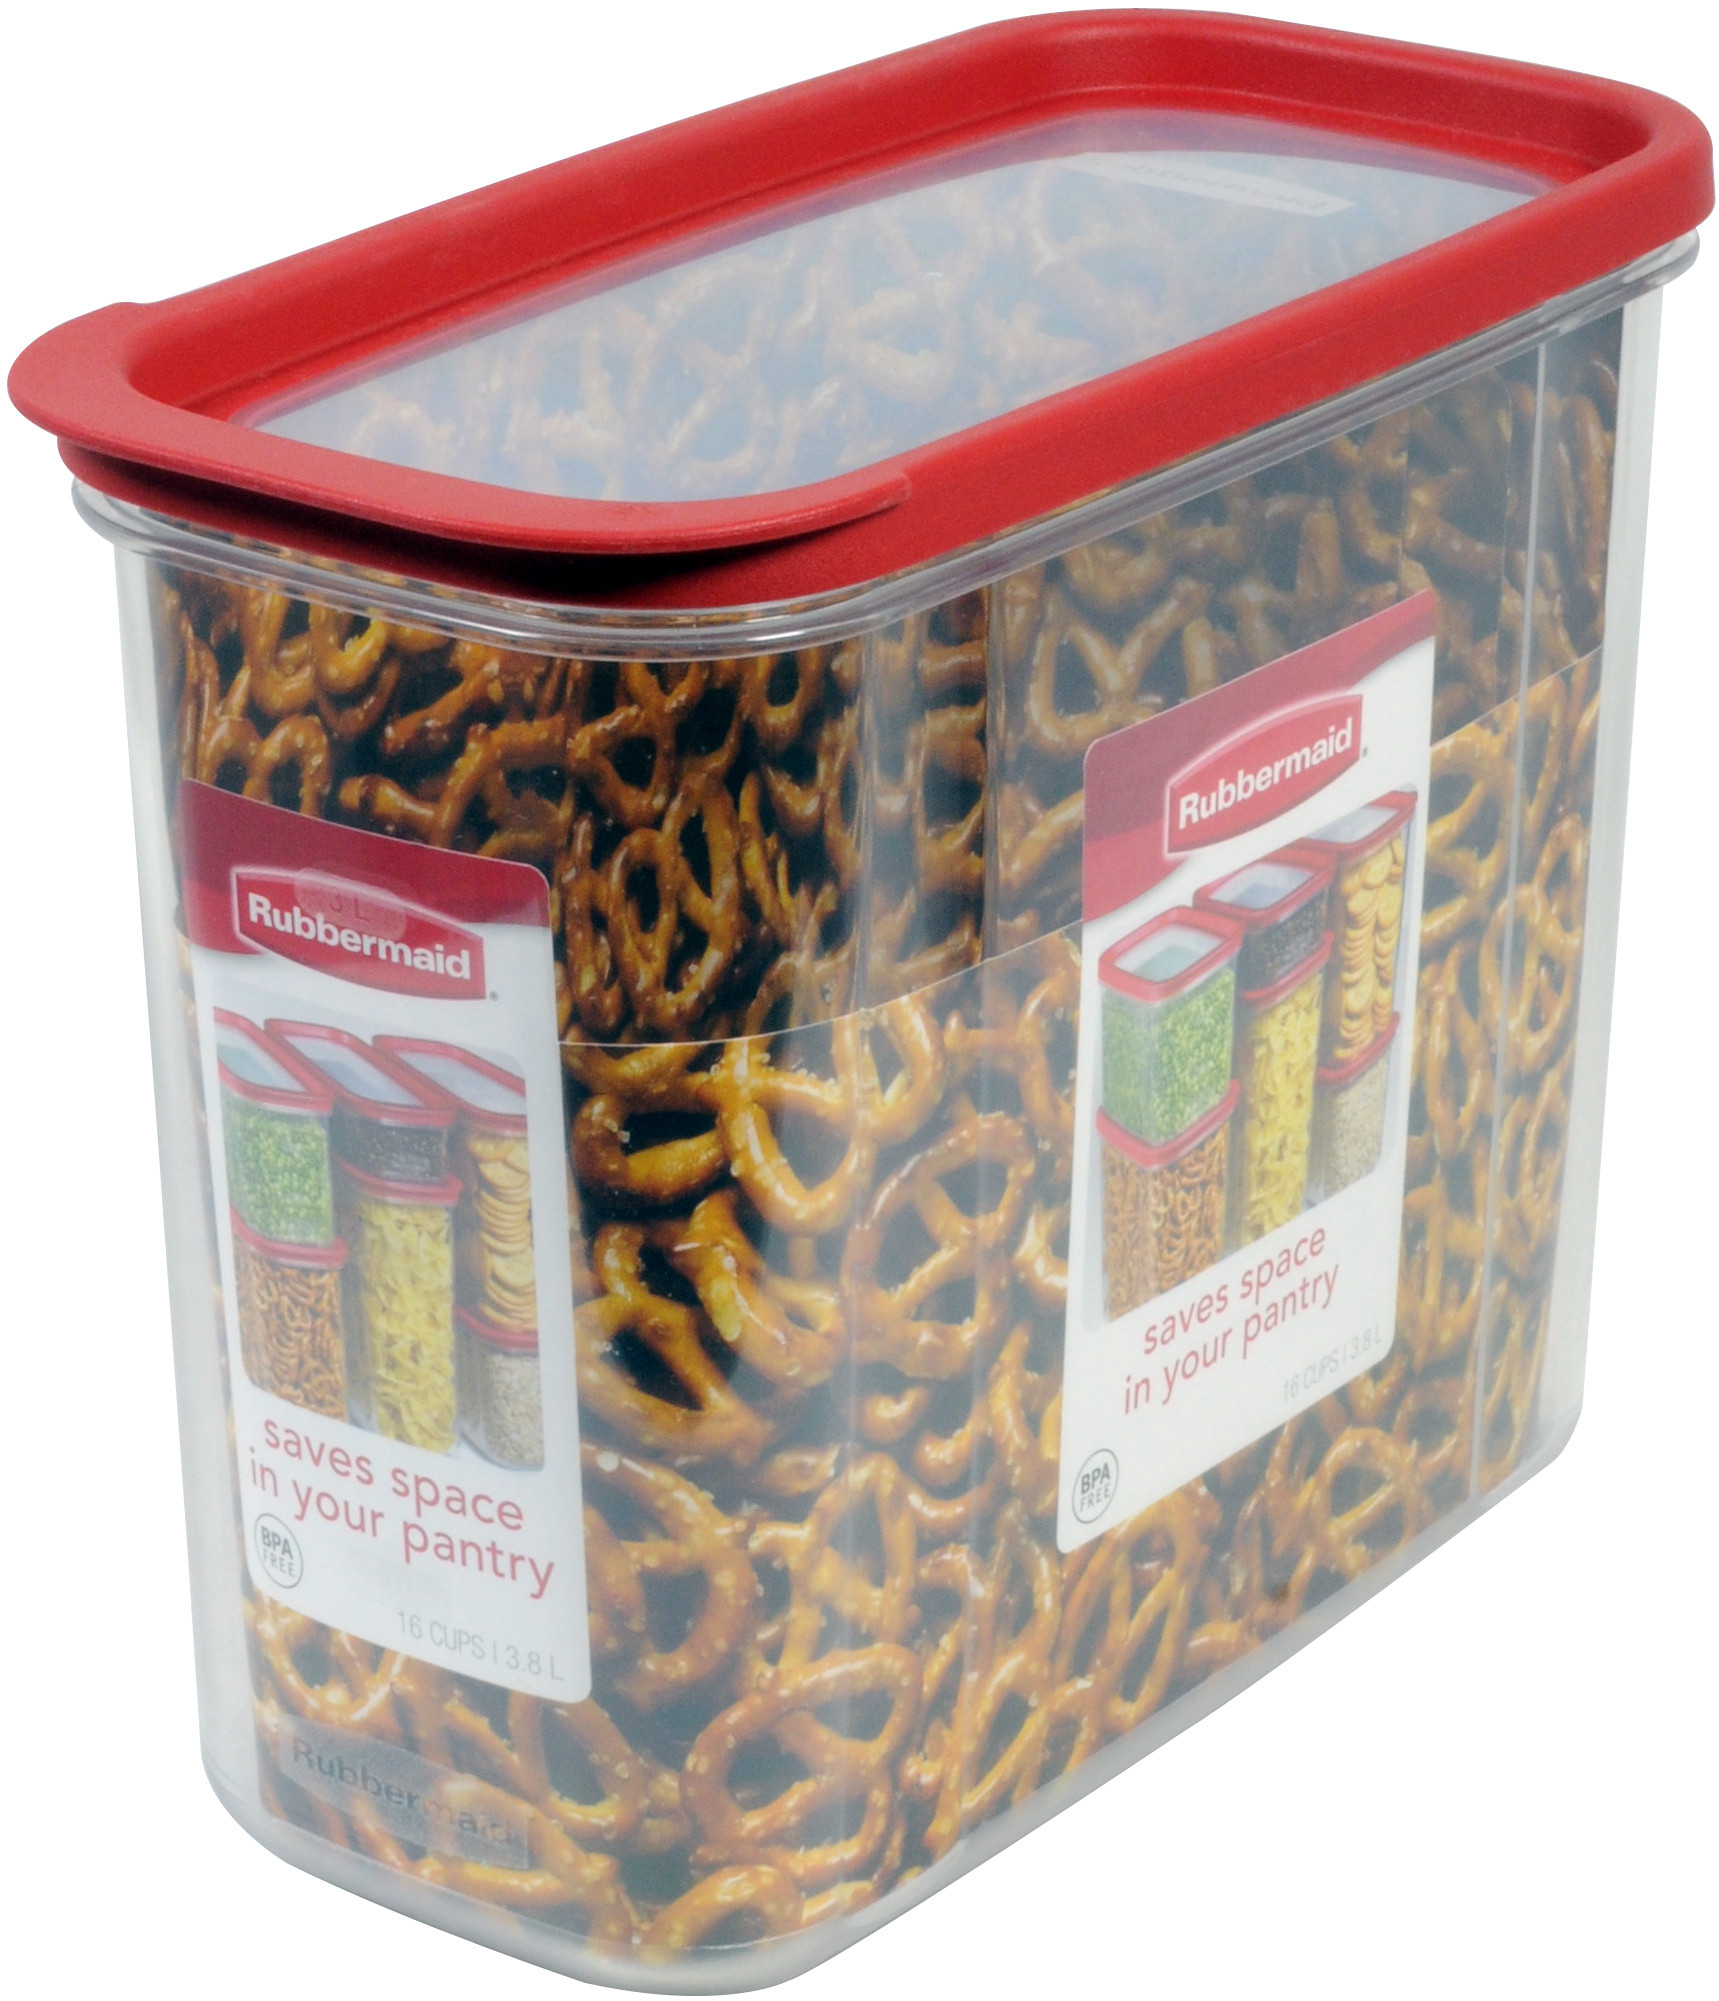 Rubbermaid Modular Dry Food Container | eBay